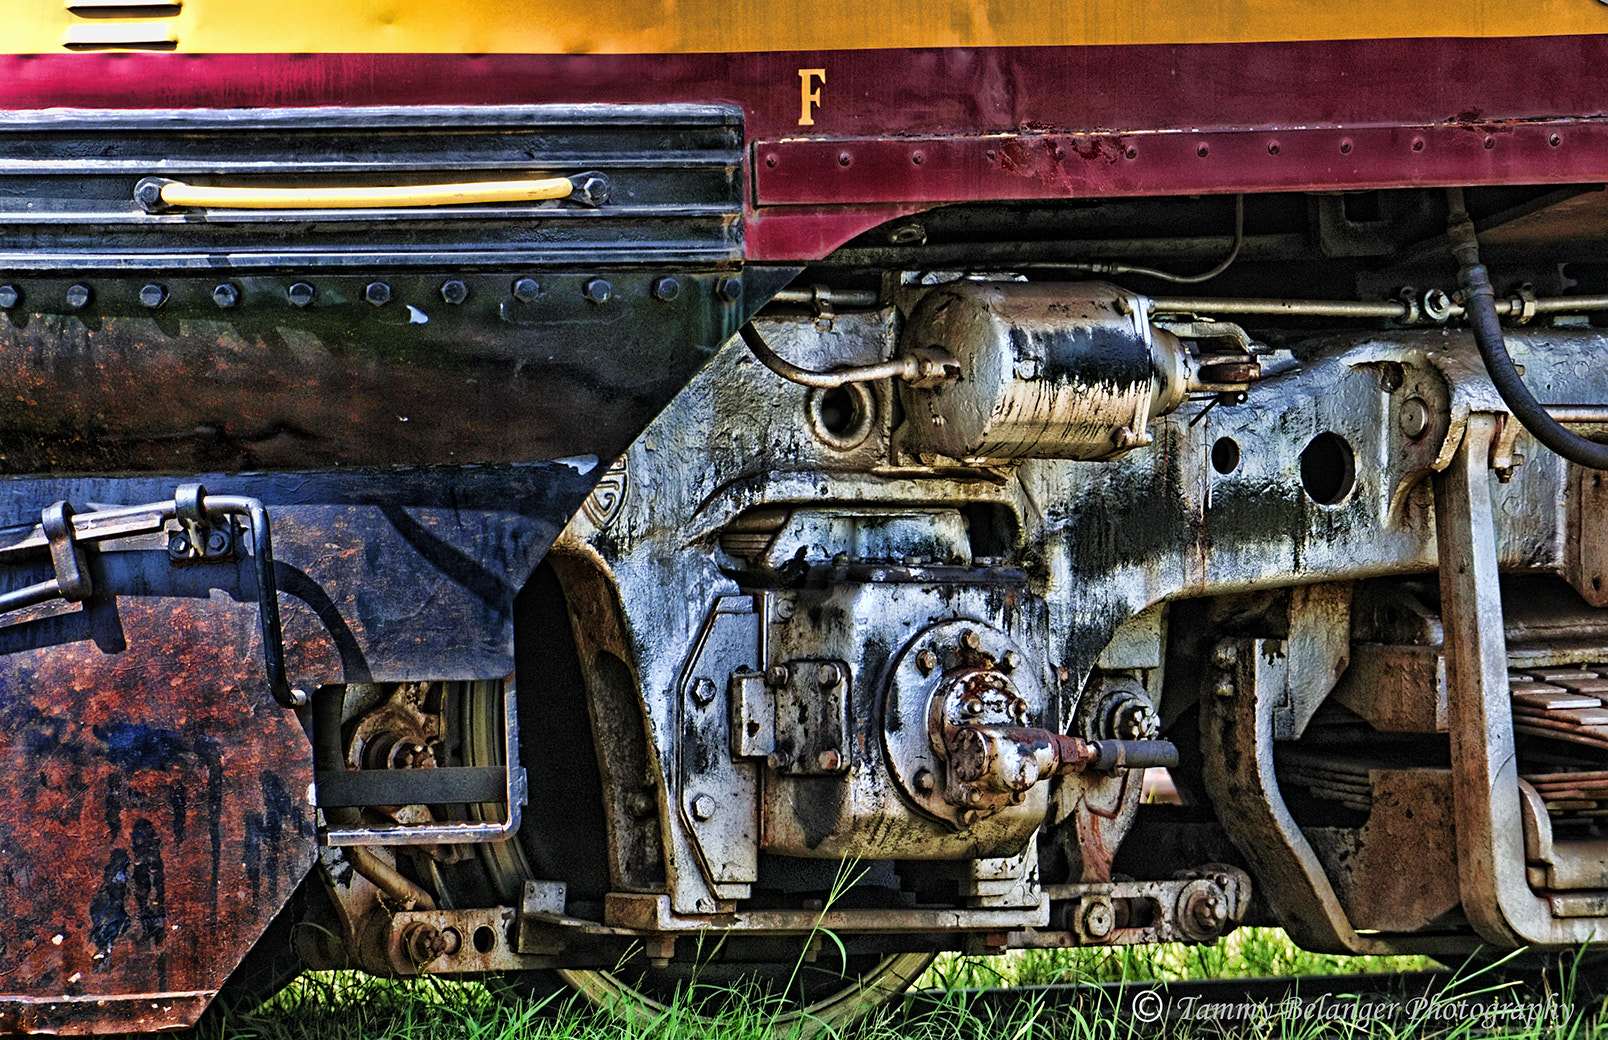 Photograph Derailed by Tammy Belanger on 500px